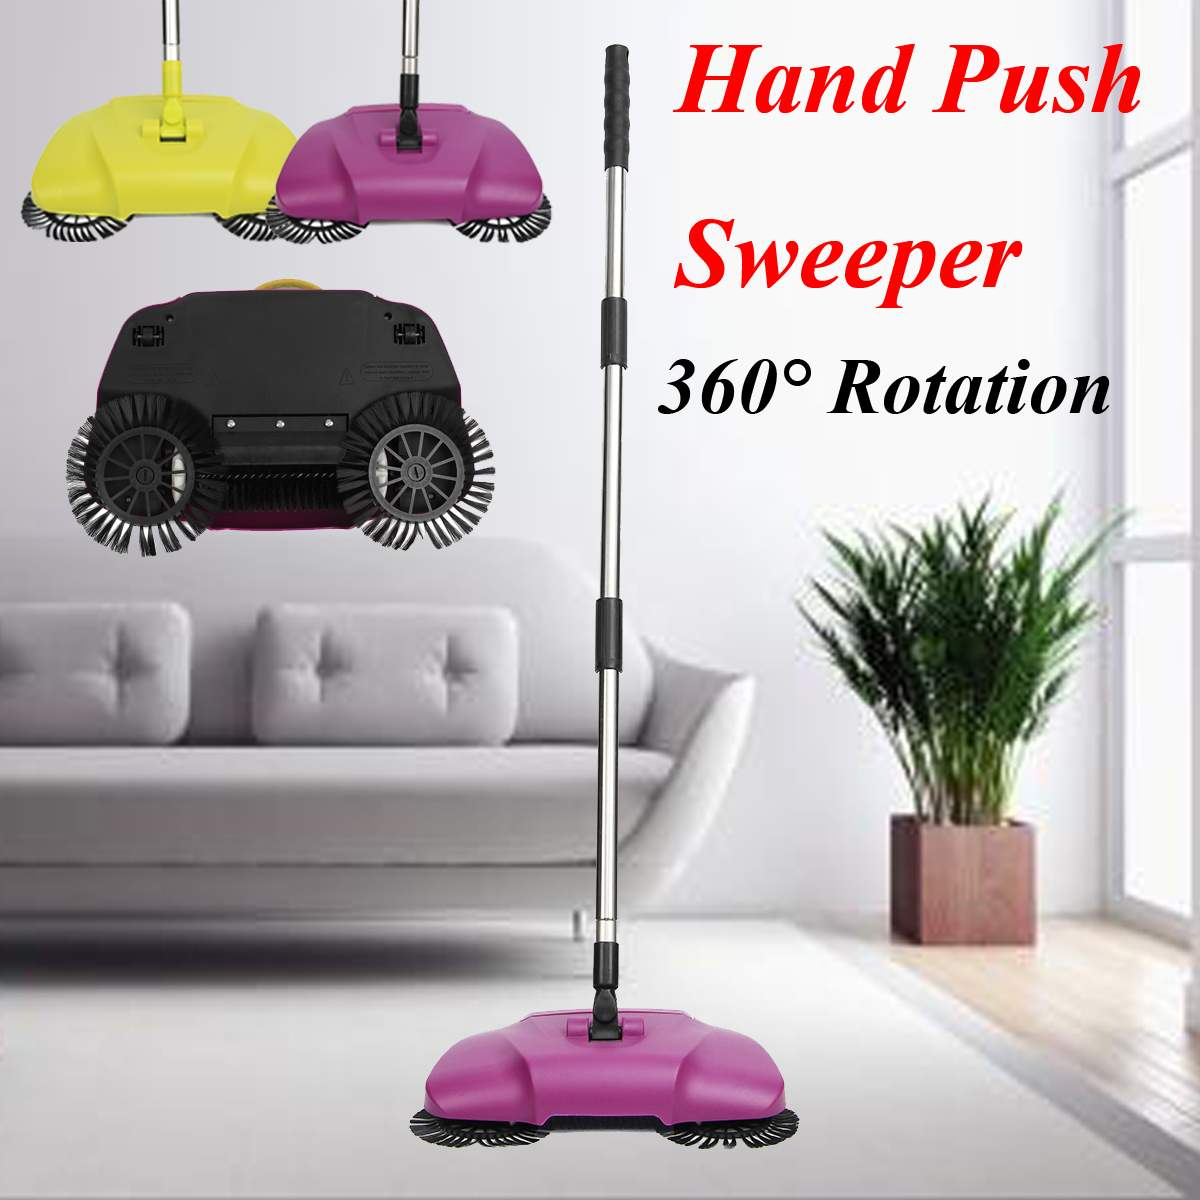 Stainless Steel Sweeping Machine 360 Degree Rotating Cleaning Push type Magic Broom Household Cleaning Hand Push Sweeper mop(China)